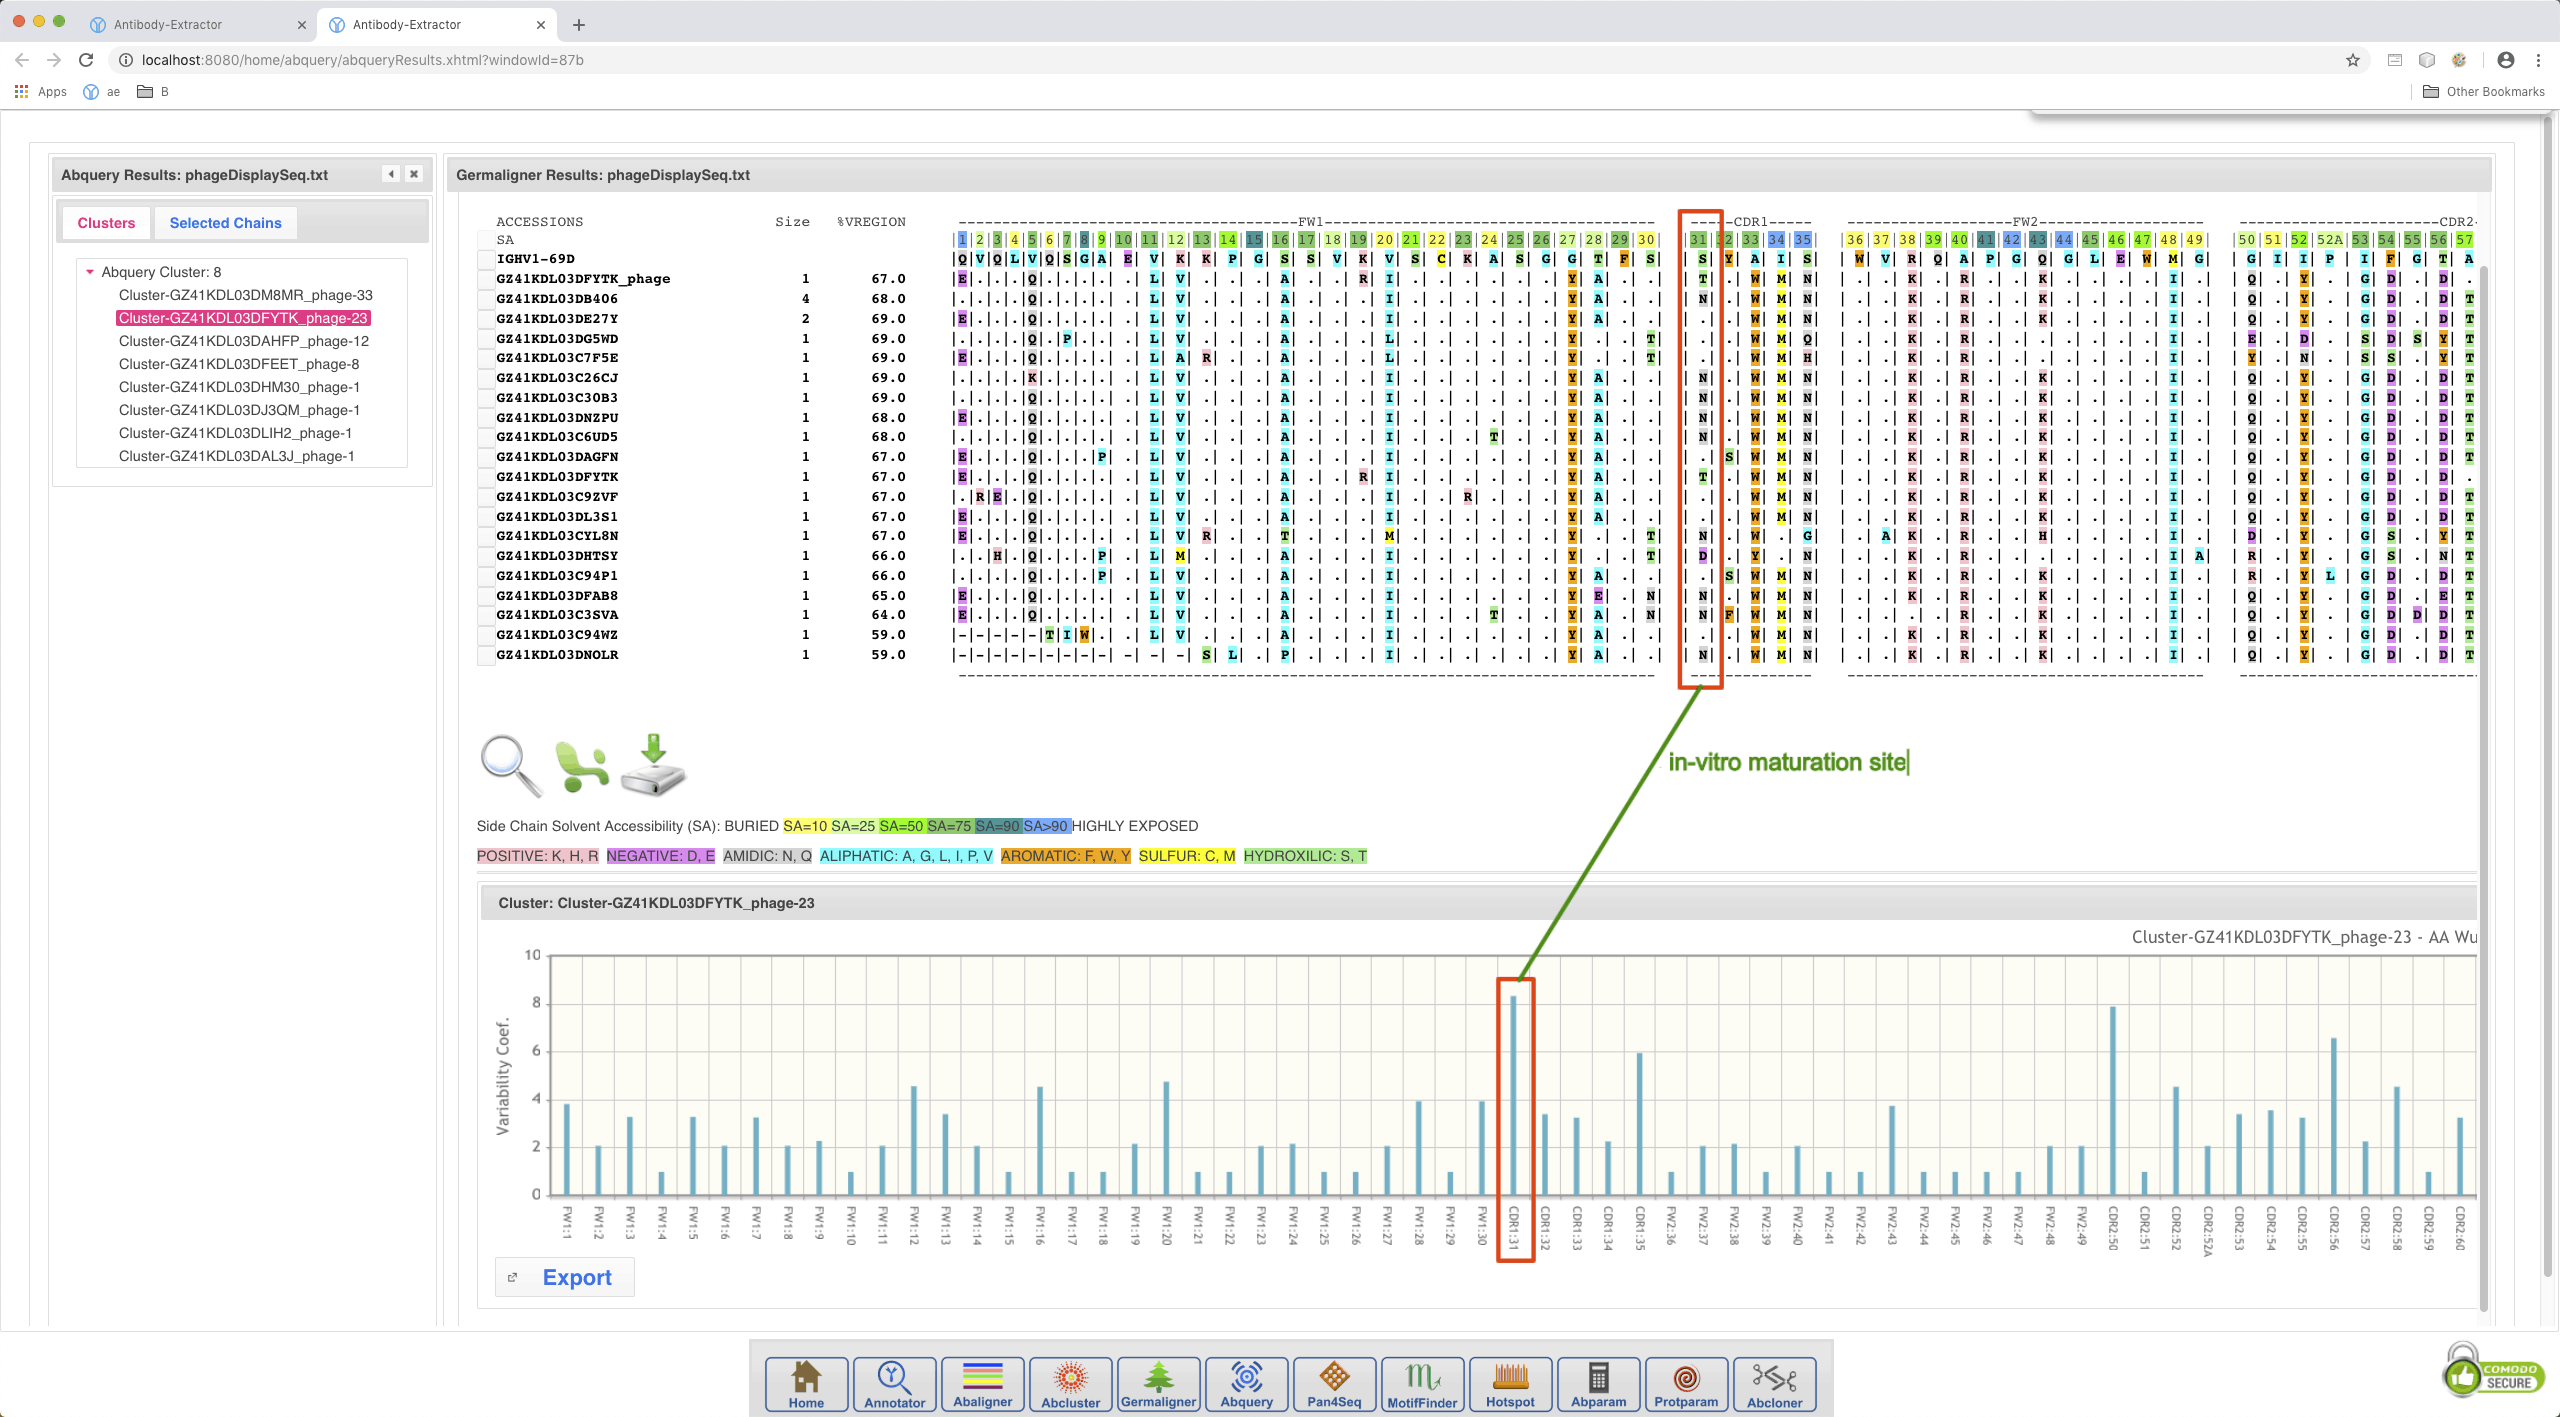 The Antibody-Extractor software platform offers a set of algorithms exclusively dedicated to antibody sequence and repertoire analysis.